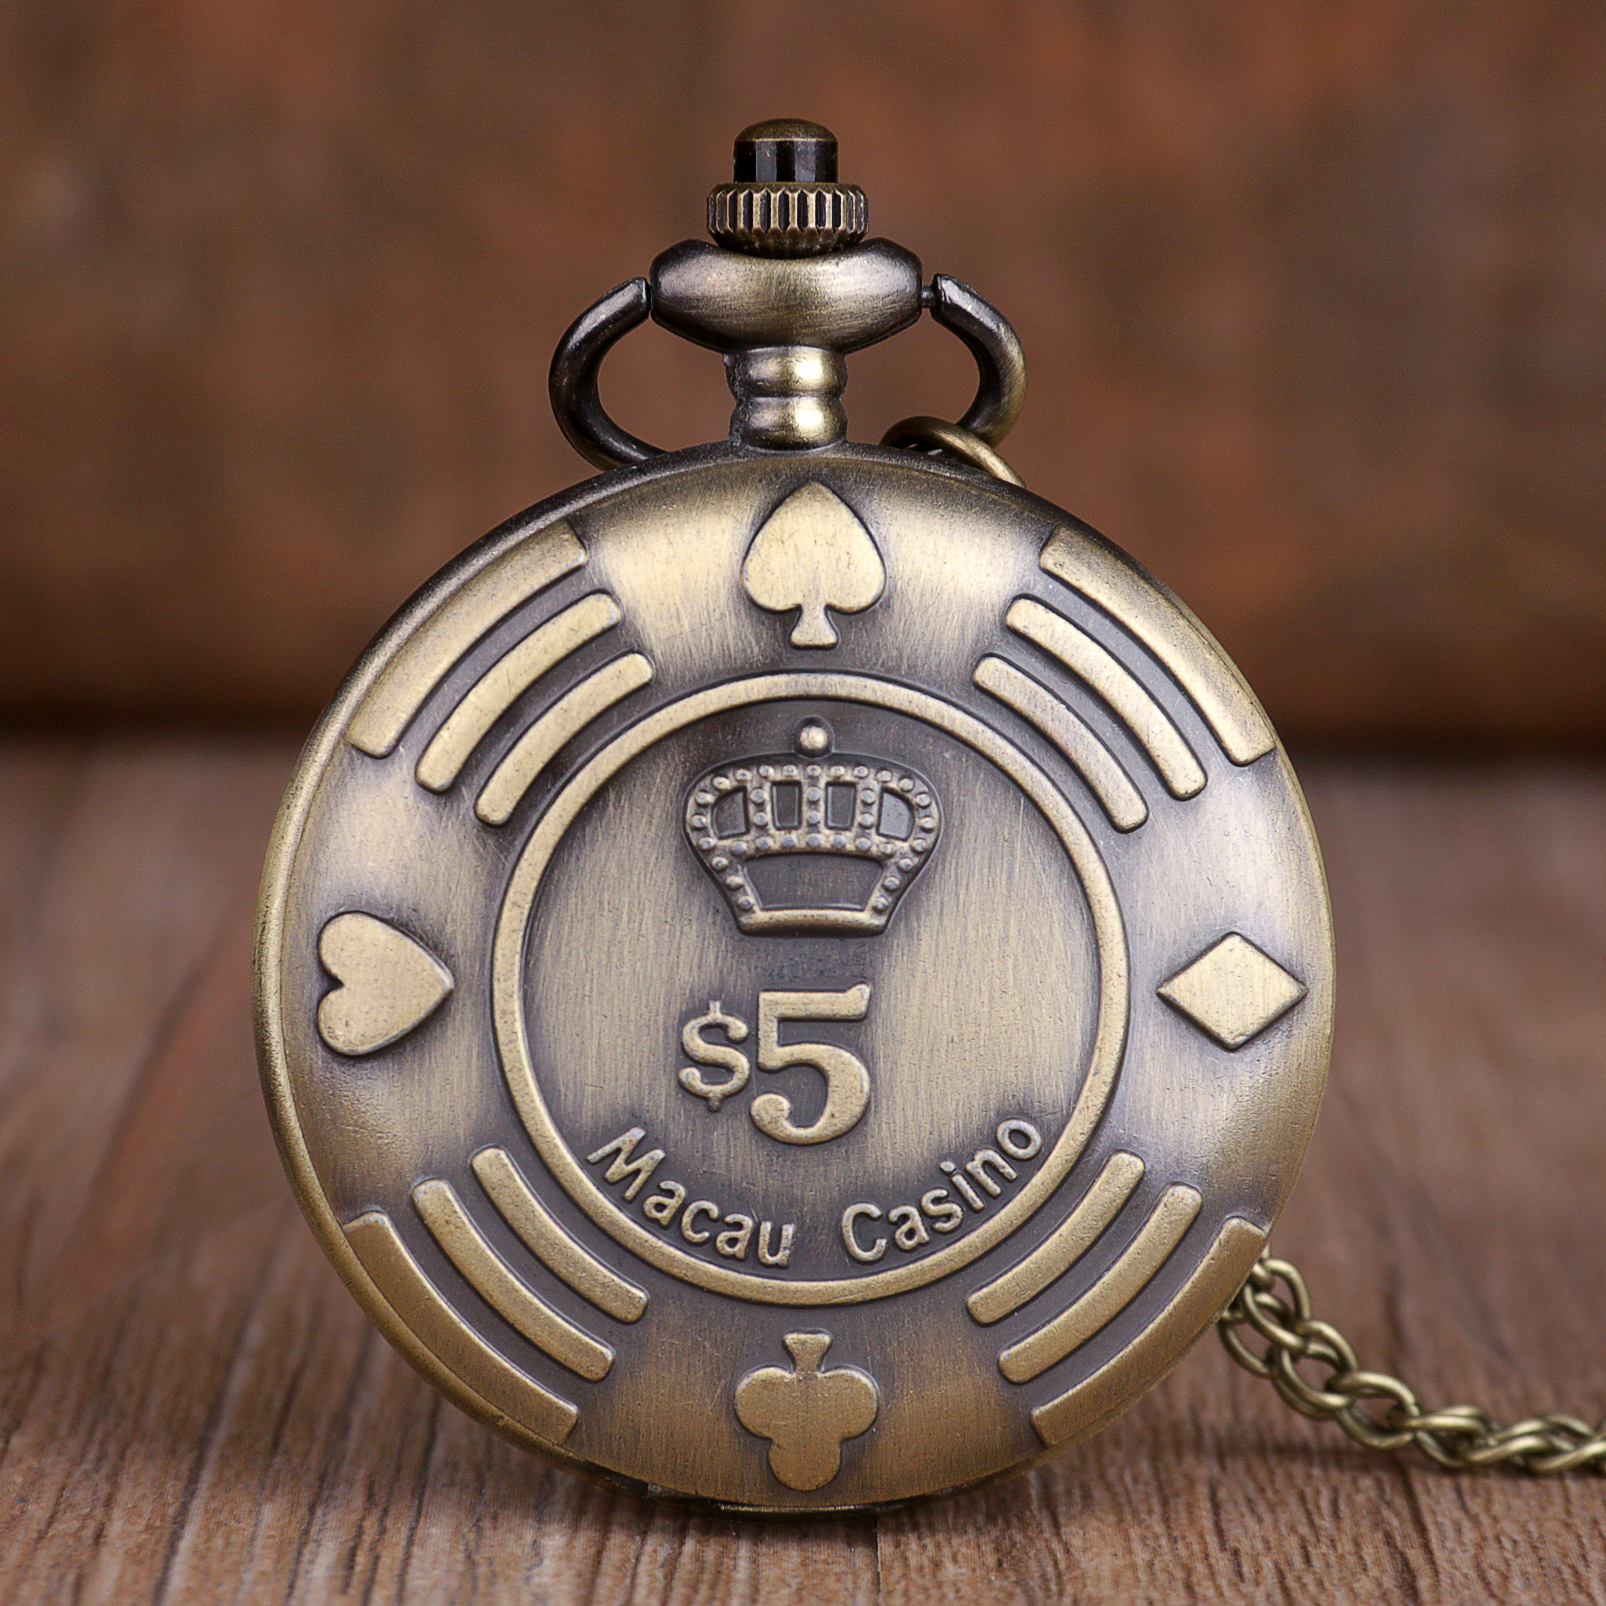 New Retro Casino Chip Money Poker Design Quartz Pocket Watch Necklace Chain Pocket Watches Souvenir Gifts For Mens Womens